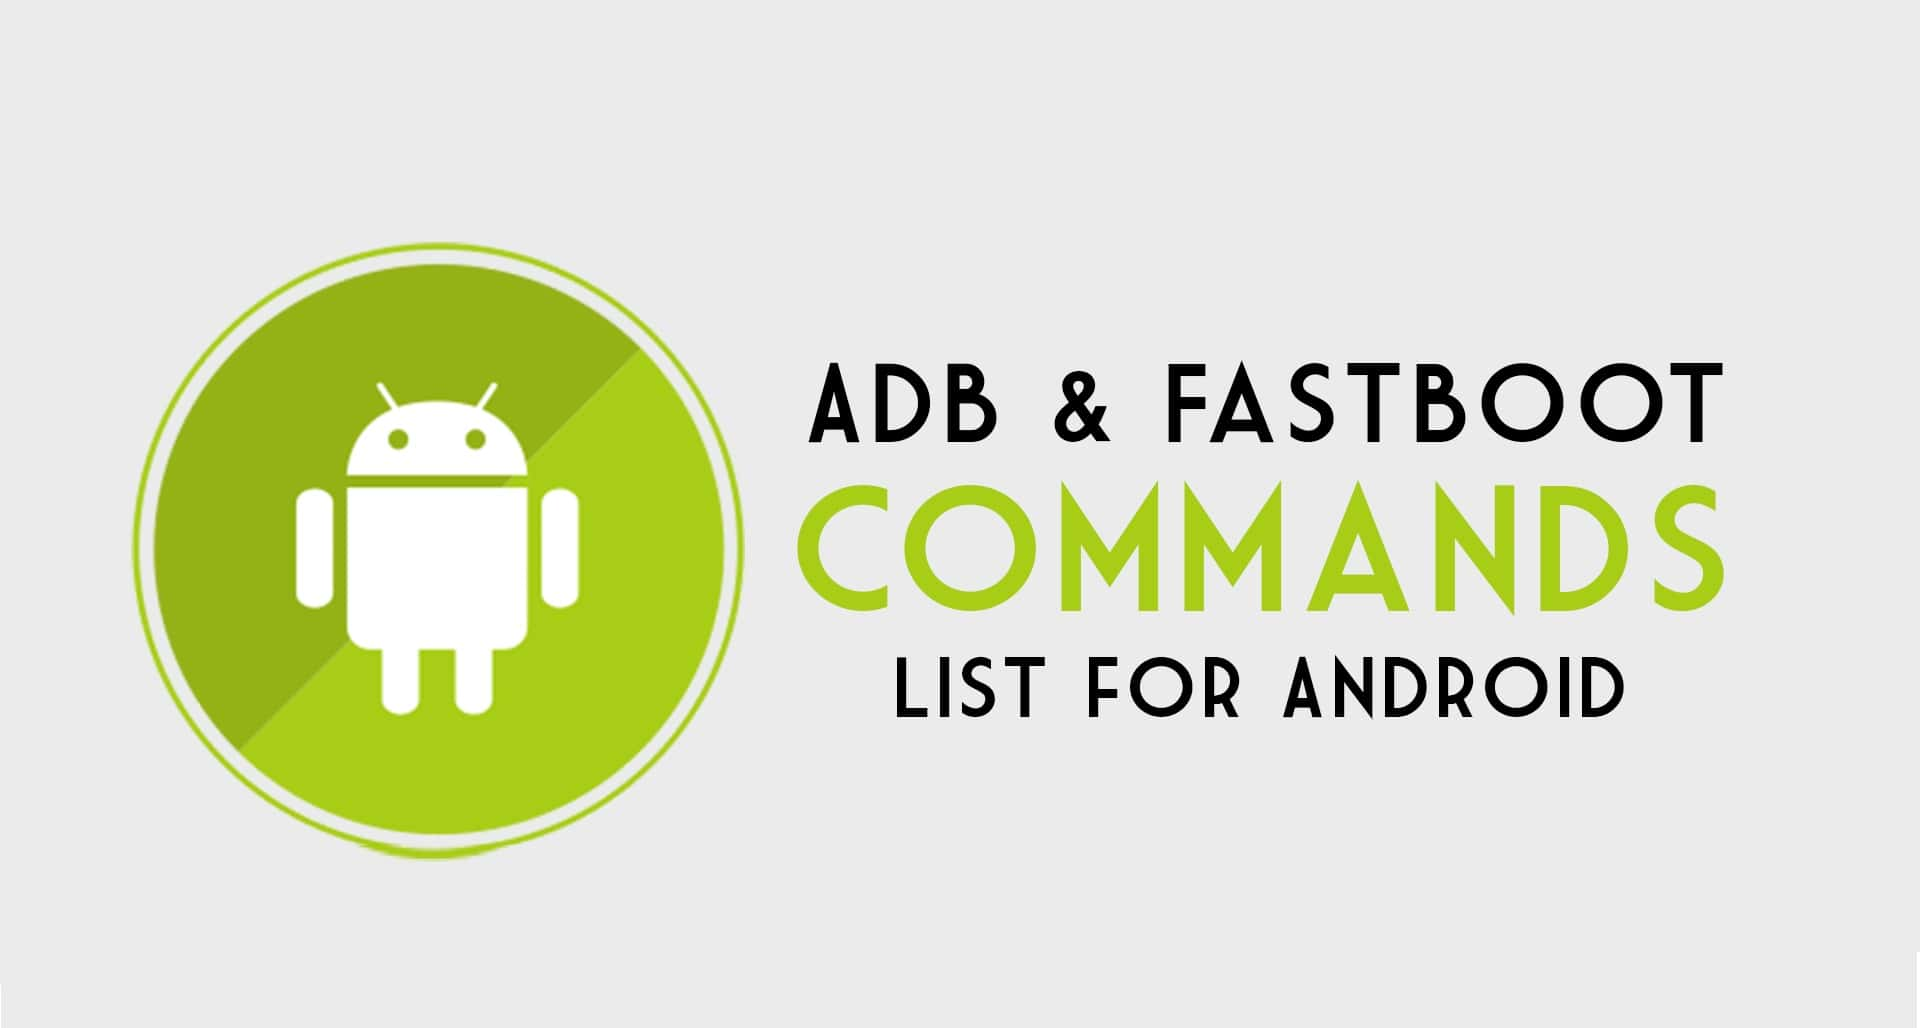 Top 15 ADB Commands Every Android User Should Know PDF min 1